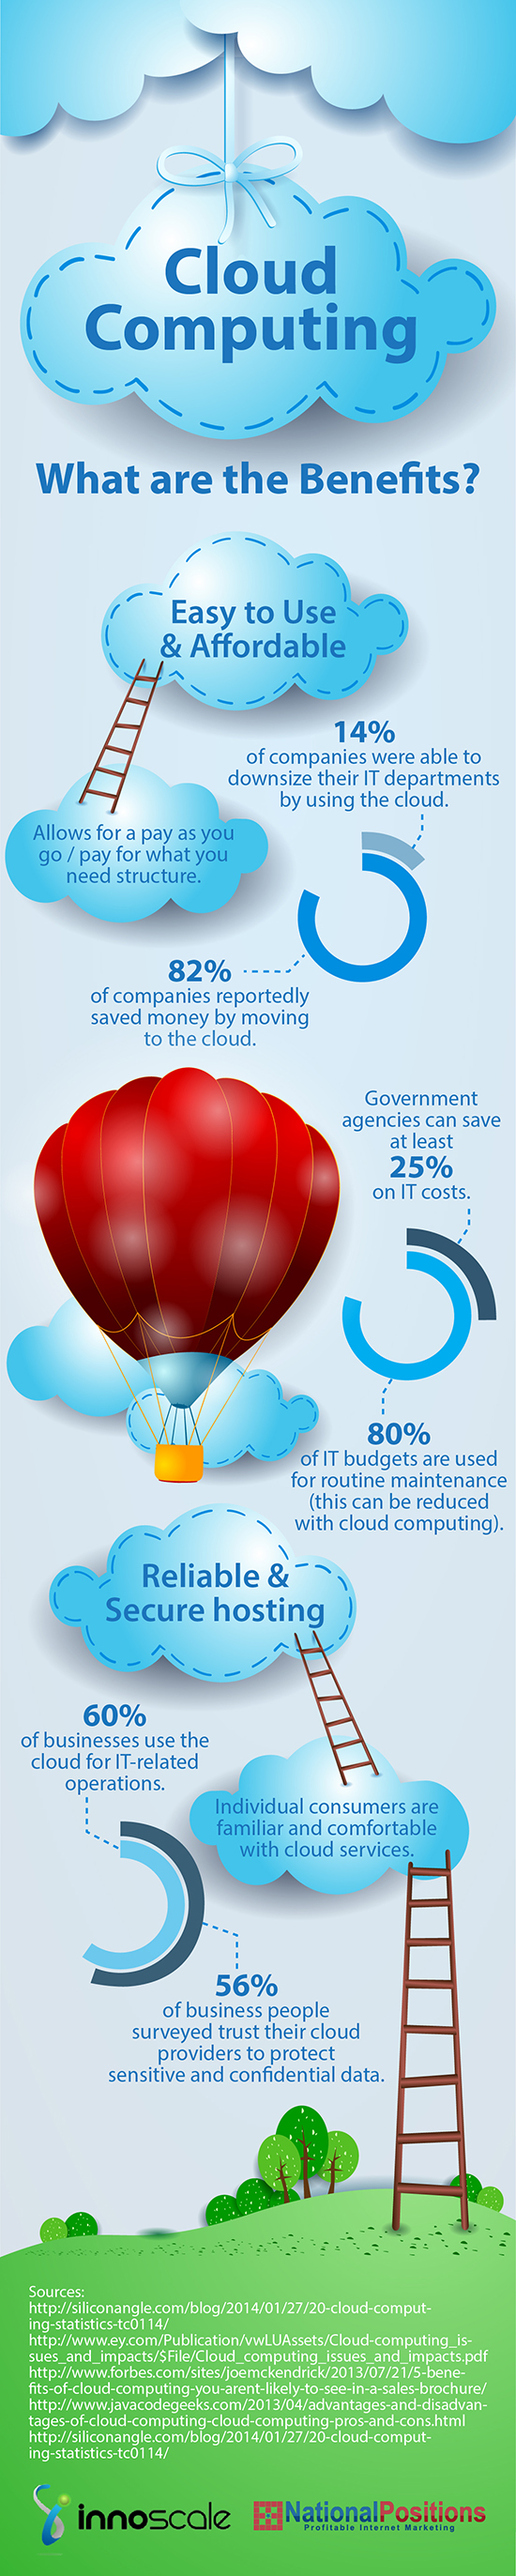 the benefits and disadvantages of cloud computing Many people are already using cloud computing without realising: gmail, hotmail, skype and youtube are all popular examples of cloud computing which most of us have been taking advantage of for years the problem with it now is the worry over security issues, companies are unsure about storing data on cloud instead of on their own server.